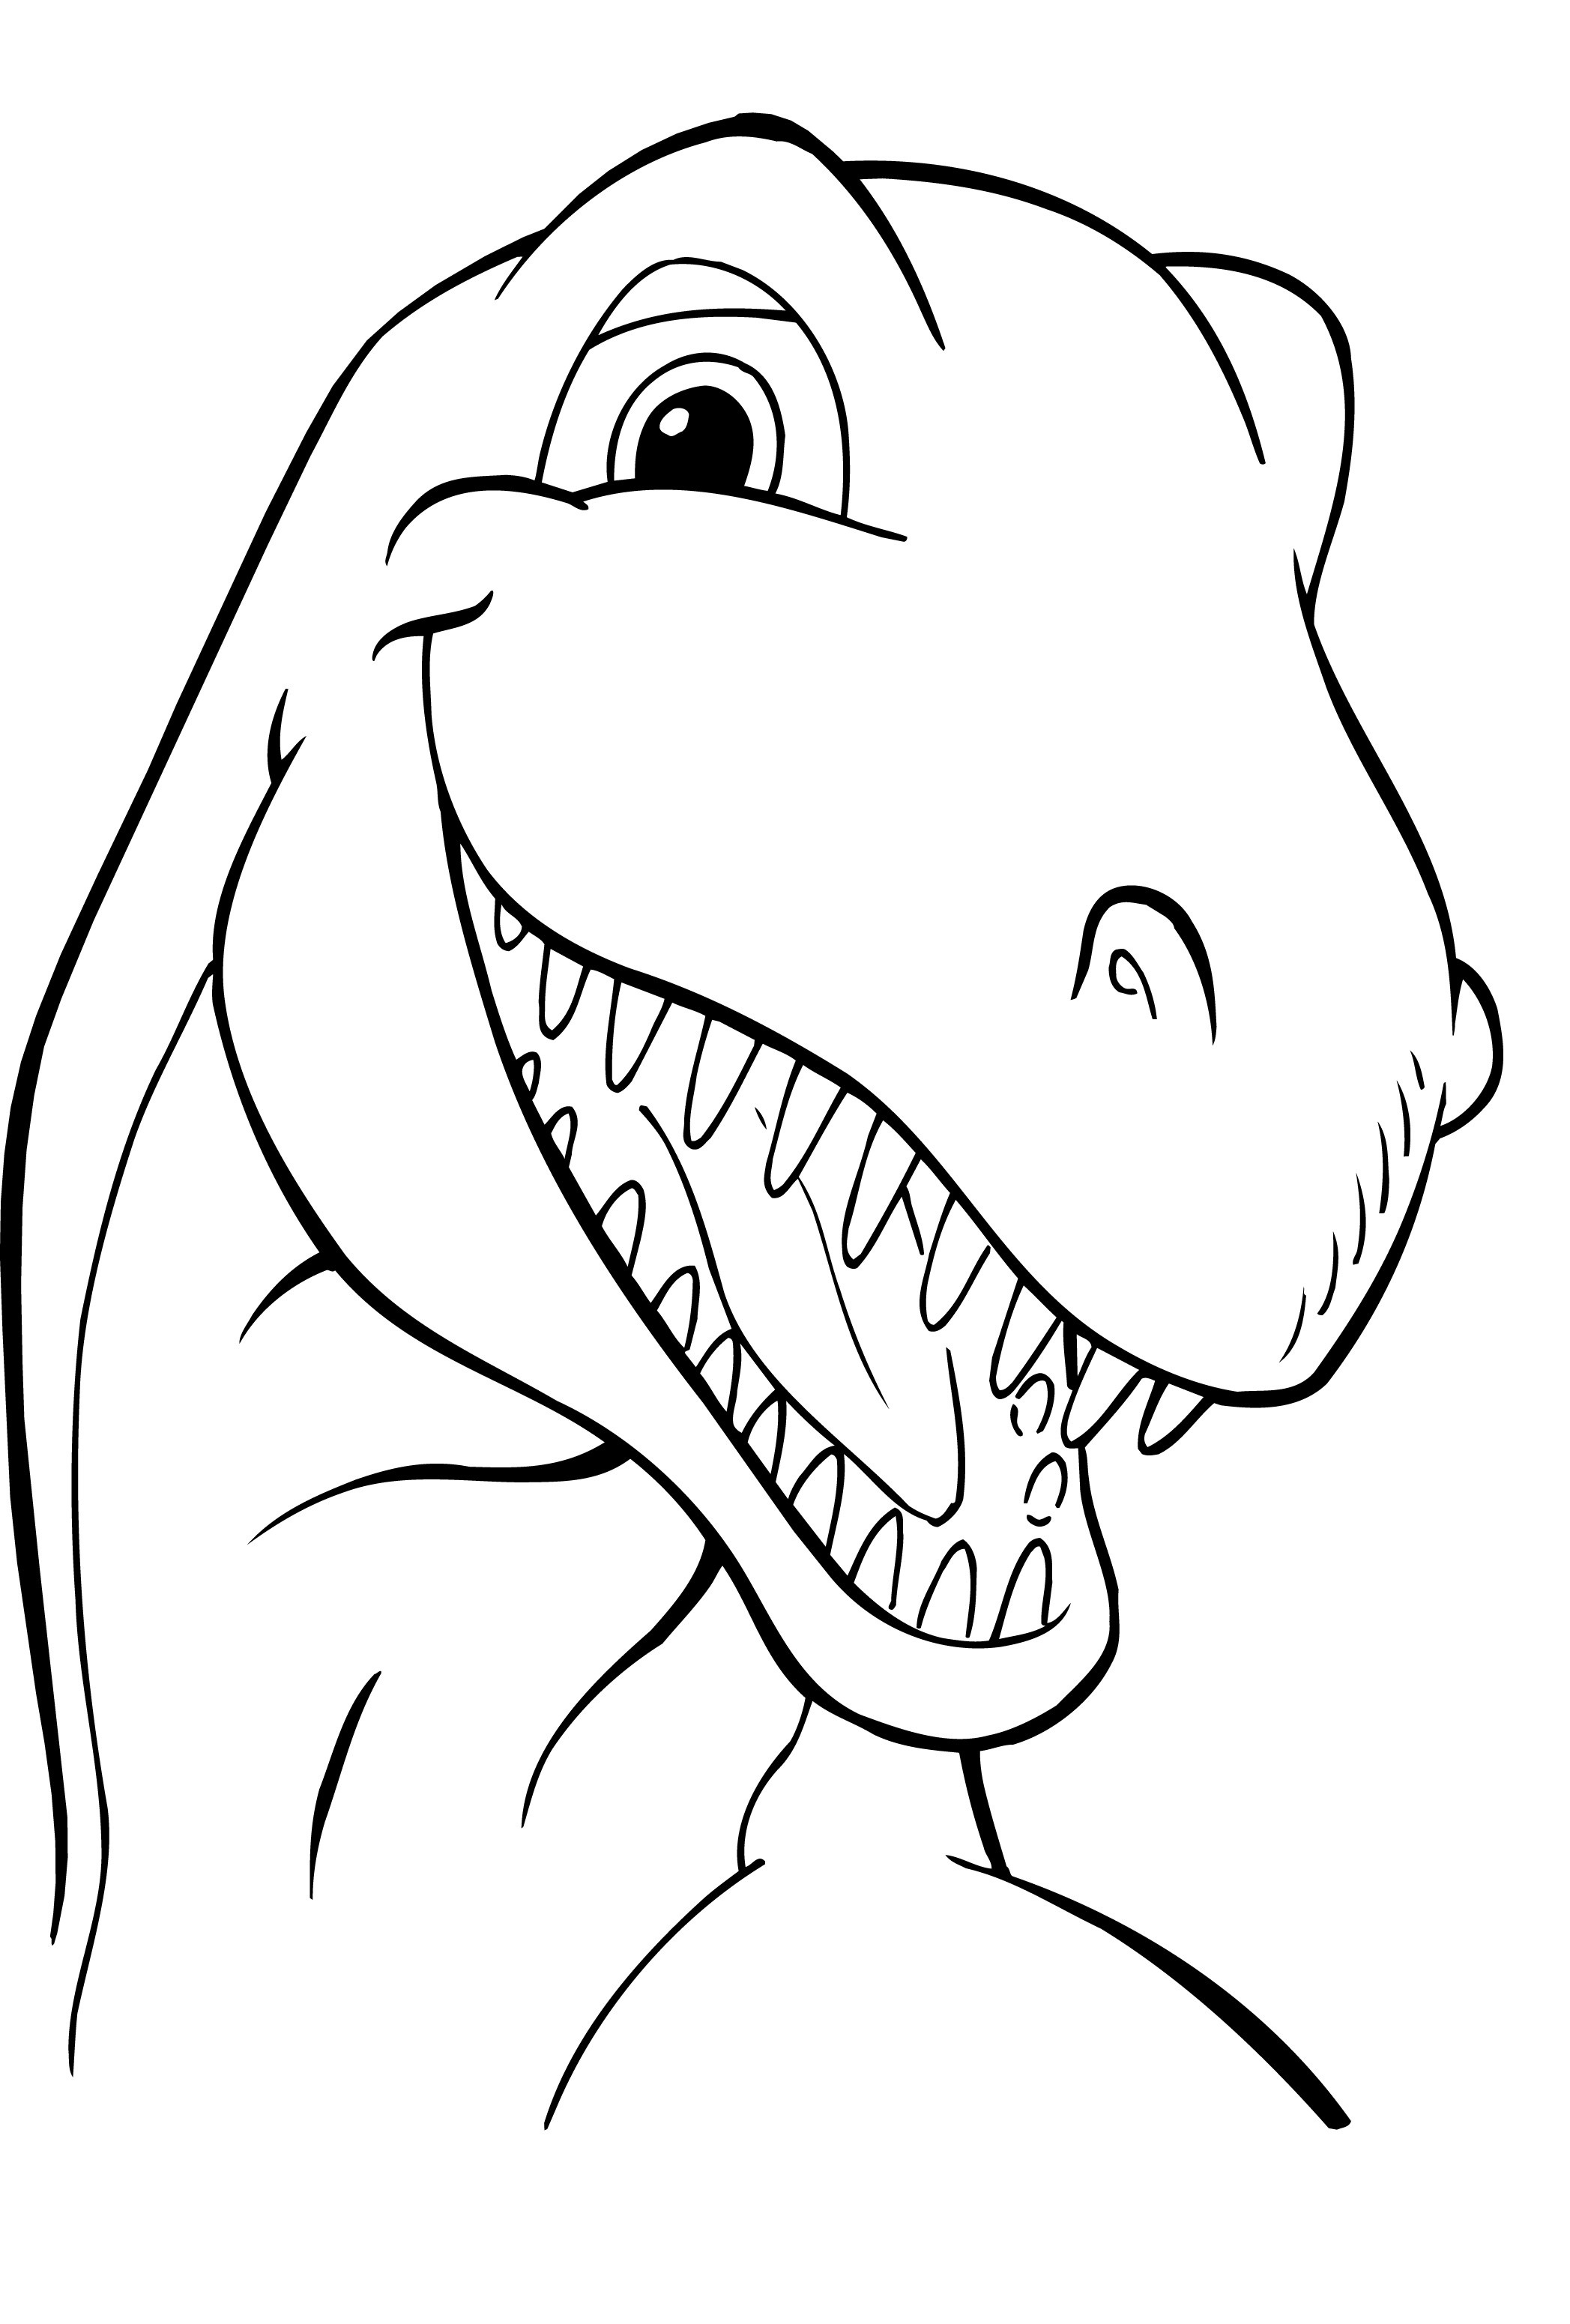 Colouring Pages To Print For Free : Free printable dinosaur coloring pages for kids